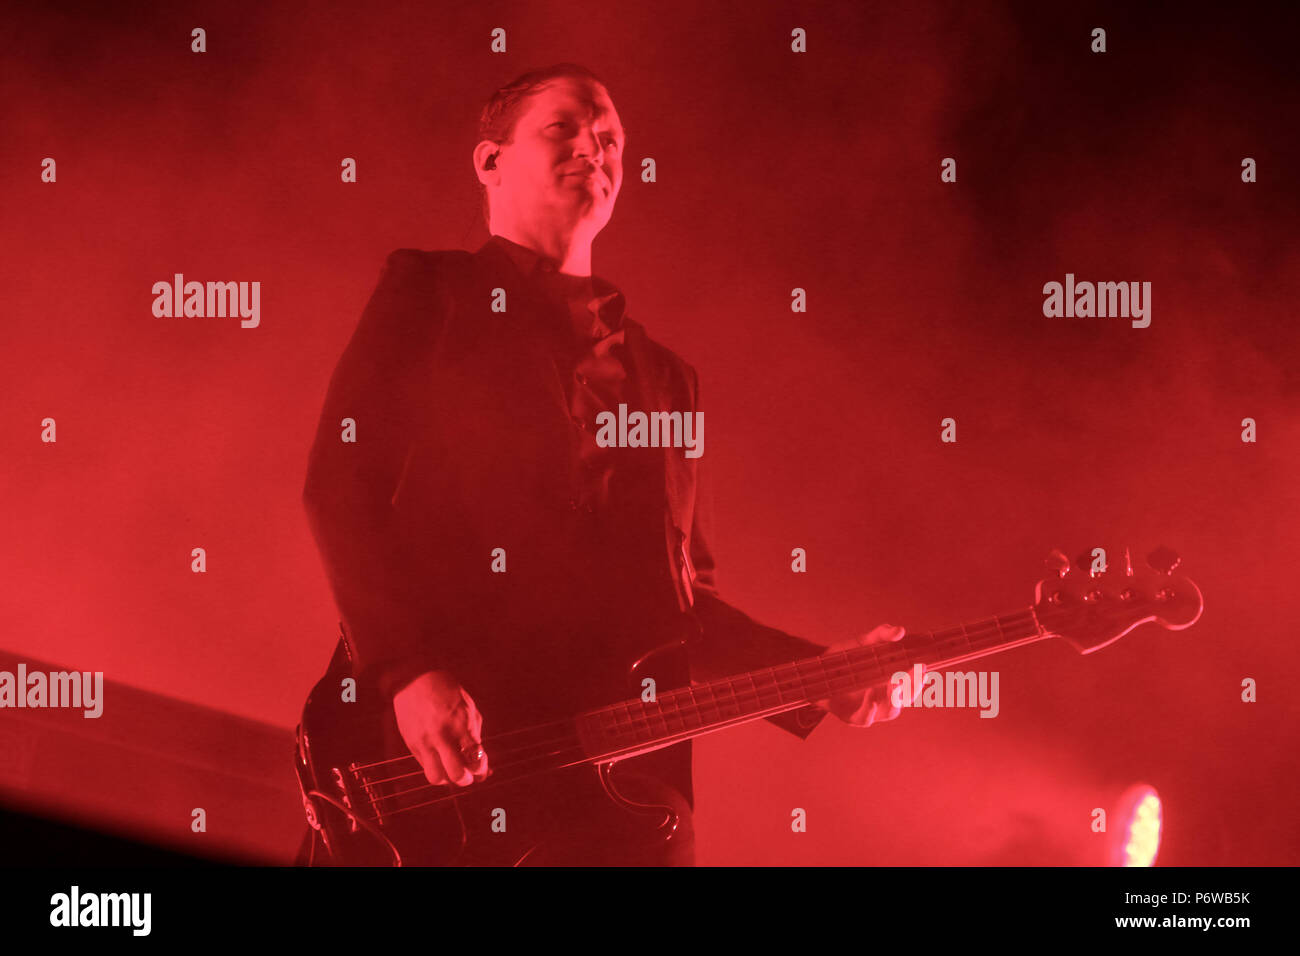 ZAGREB, CROATIA - 27th June, 2018 : American rock band Interpol performs on the Main stage during the 13th INmusic festival located on the lake Jarun  - Stock Image